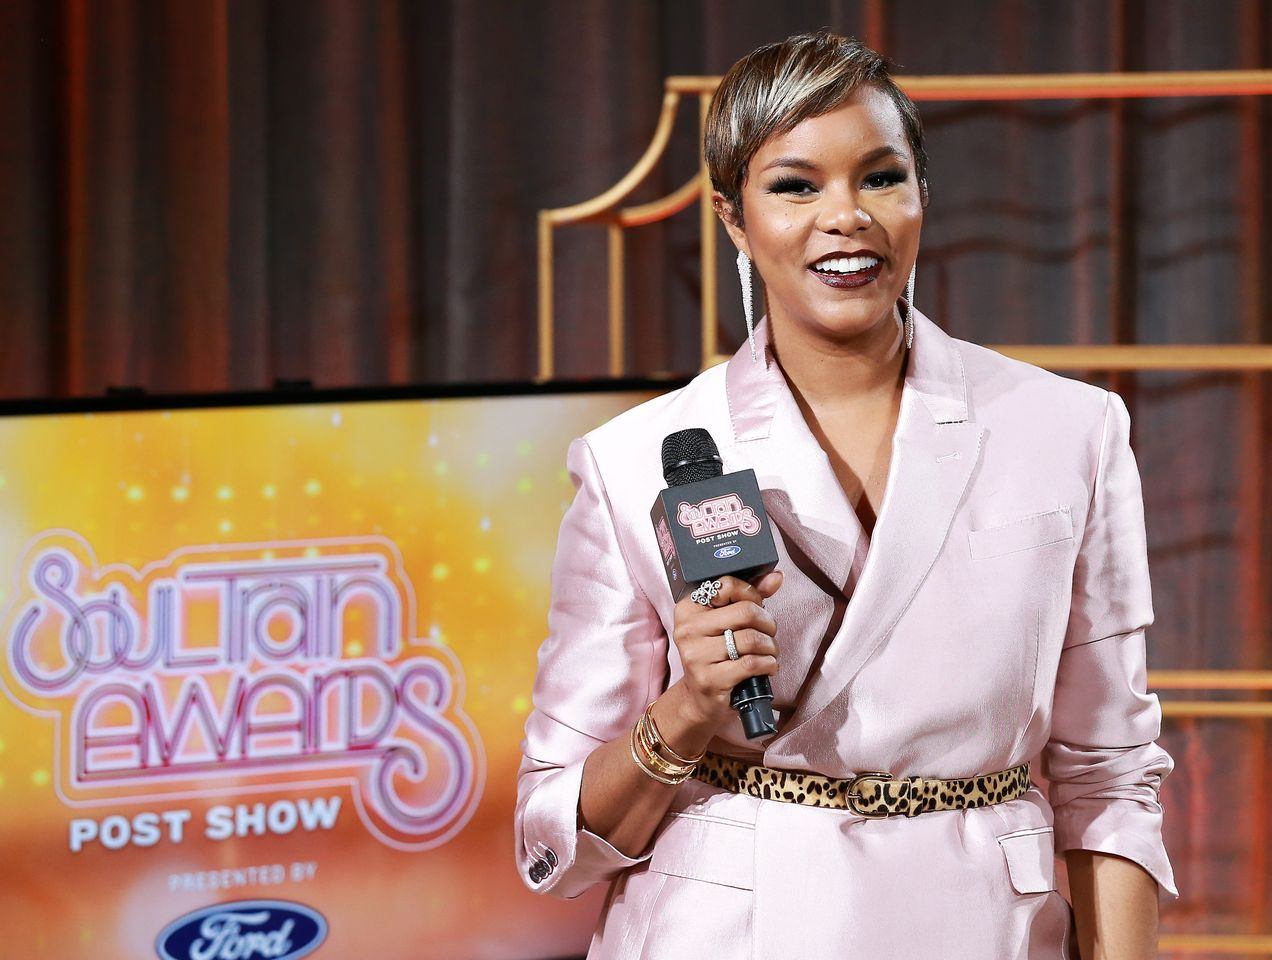 LeToya Luckett at the 2019 Soul Train Awards presented by BET at the Orleans Arena on November 17, 2019 in Las Vegas, Nevada   Photo: Getty Images